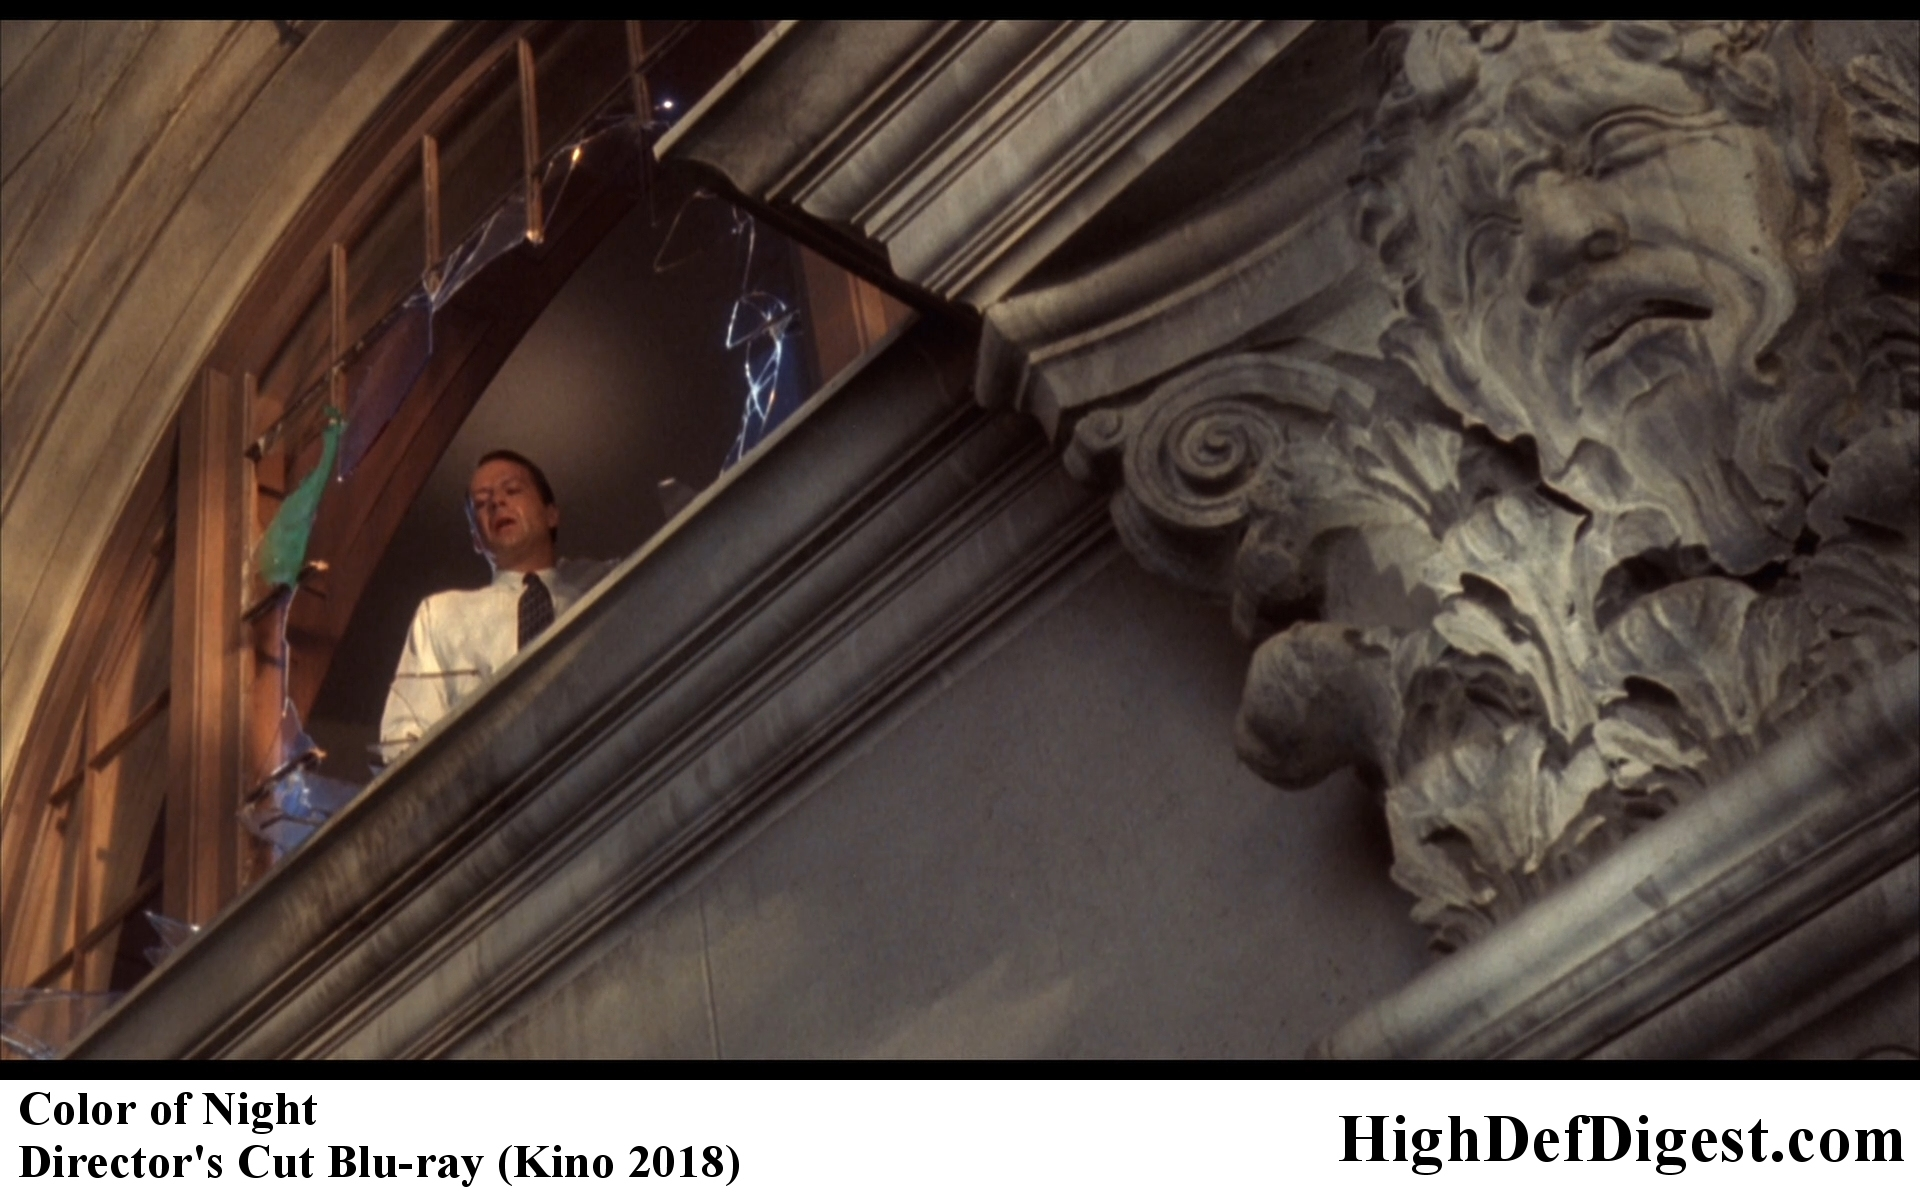 Color of Night Bruce Willis in the Window Comparison - Director's Cut